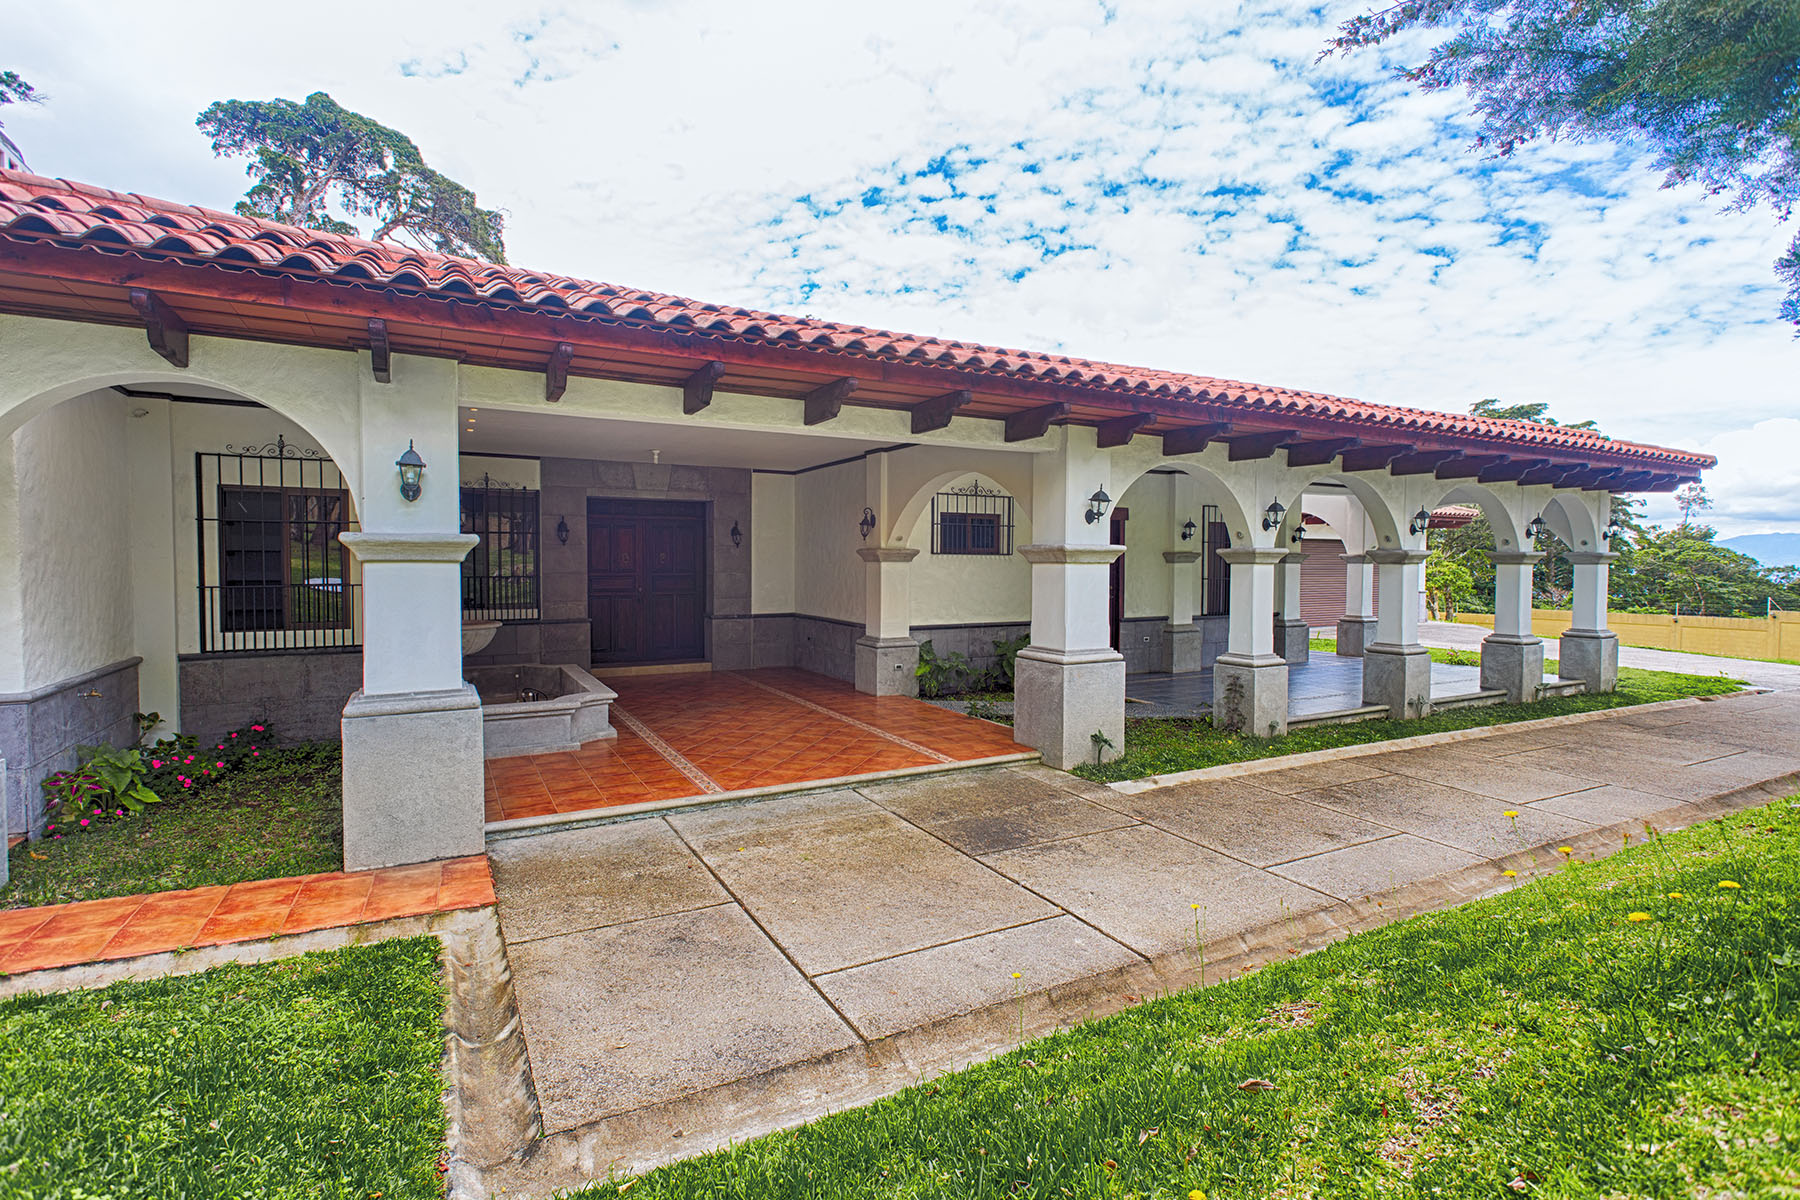 Single Family Home for Sale at Refugio del Bosque en el Castillo San Rafael, Costa Rica